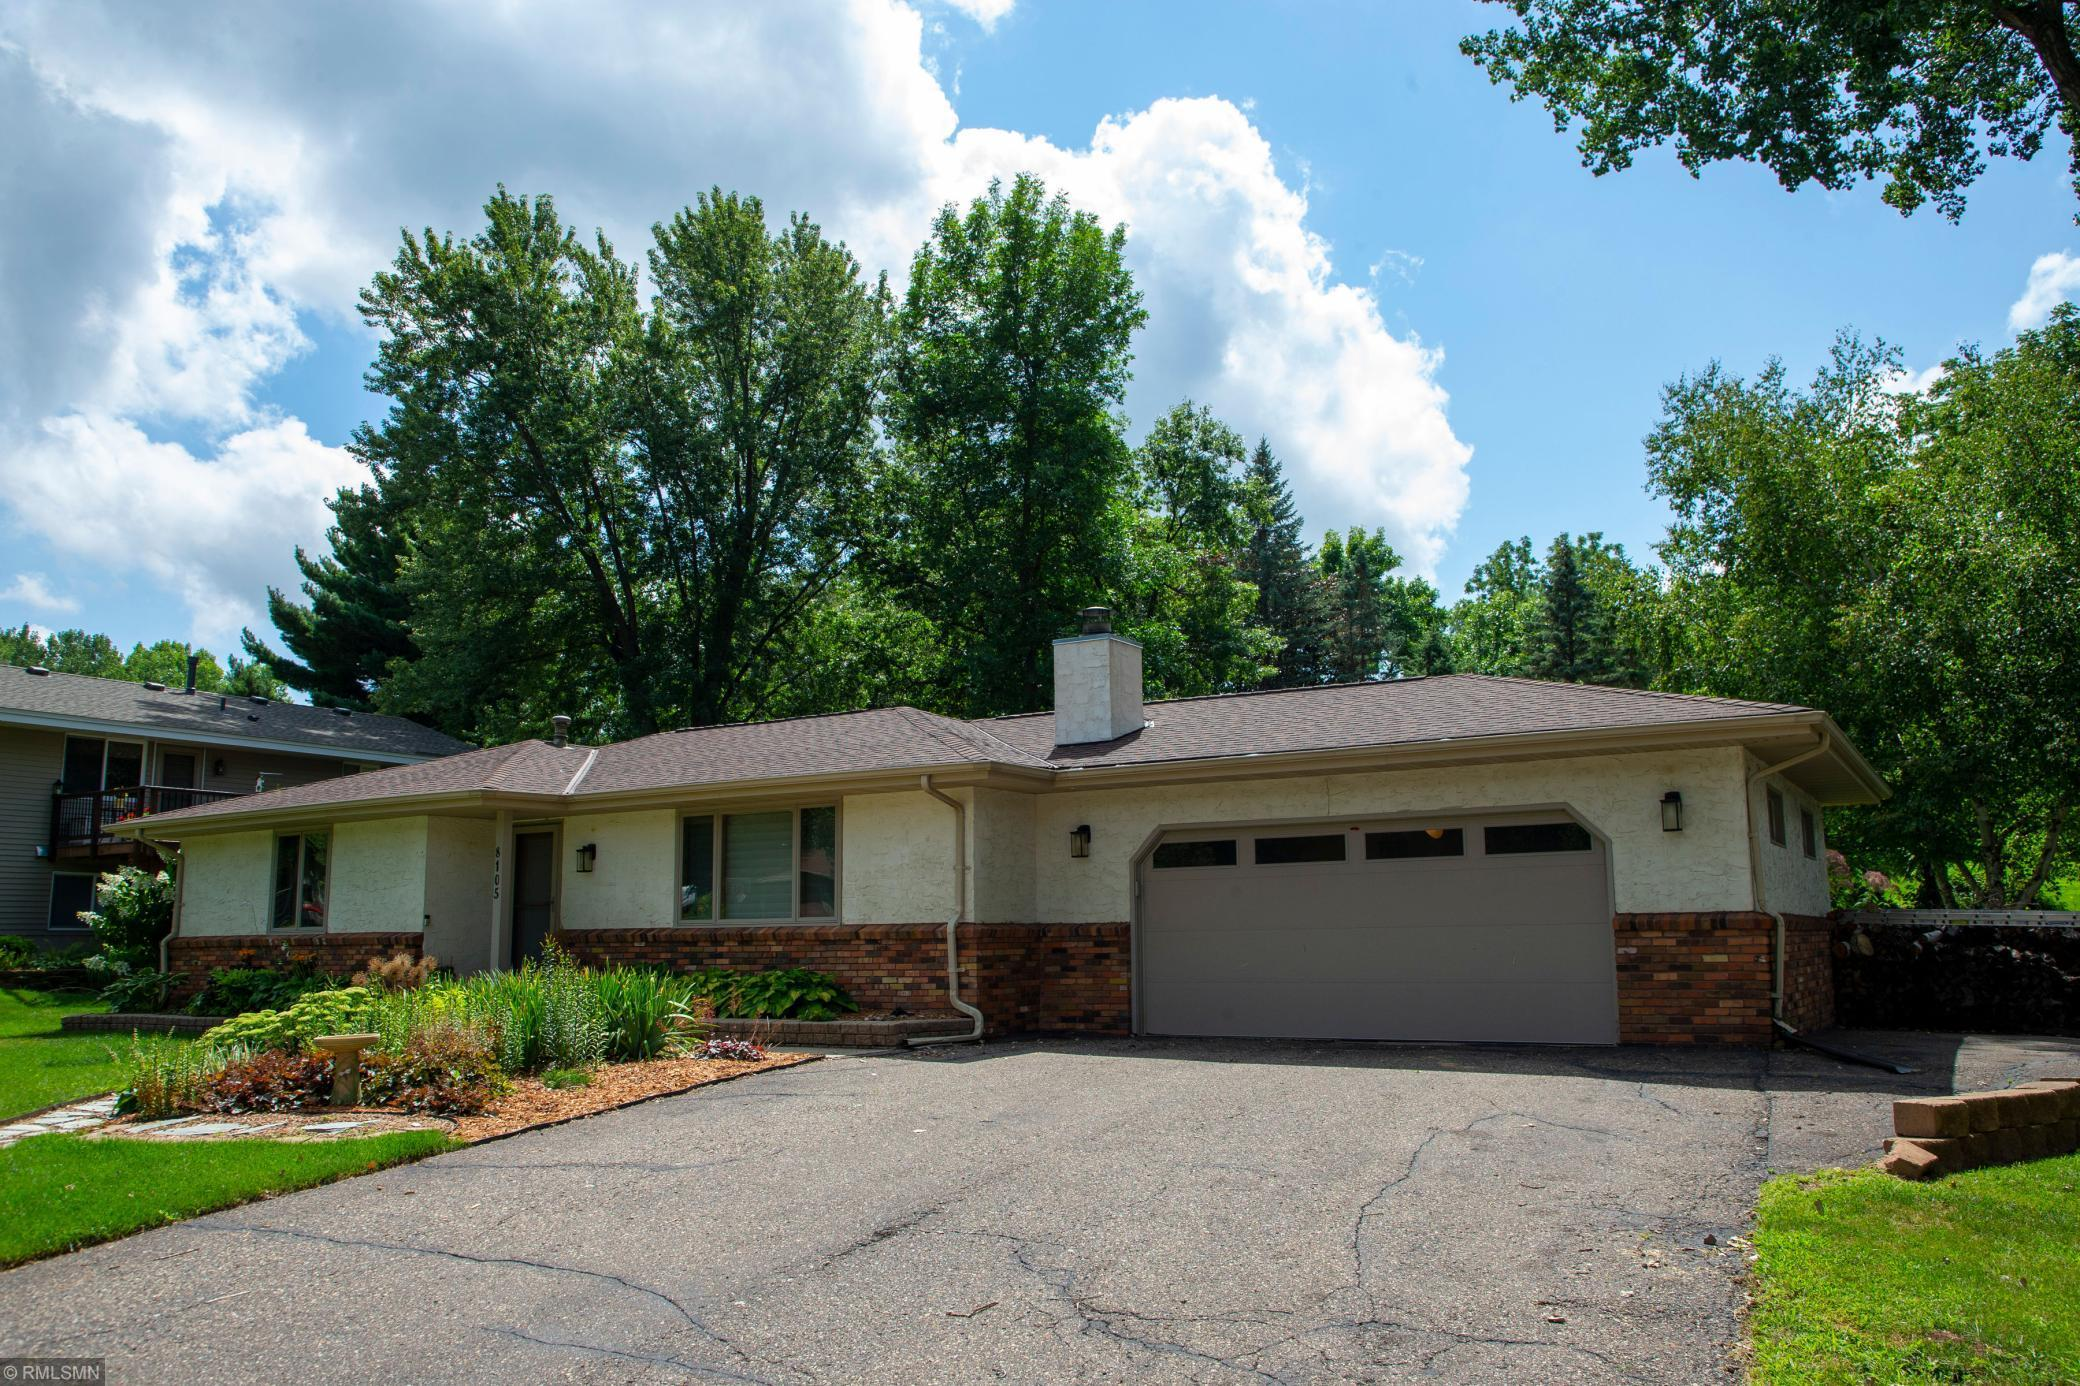 8105 Casper Way Property Photo - Inver Grove Heights, MN real estate listing